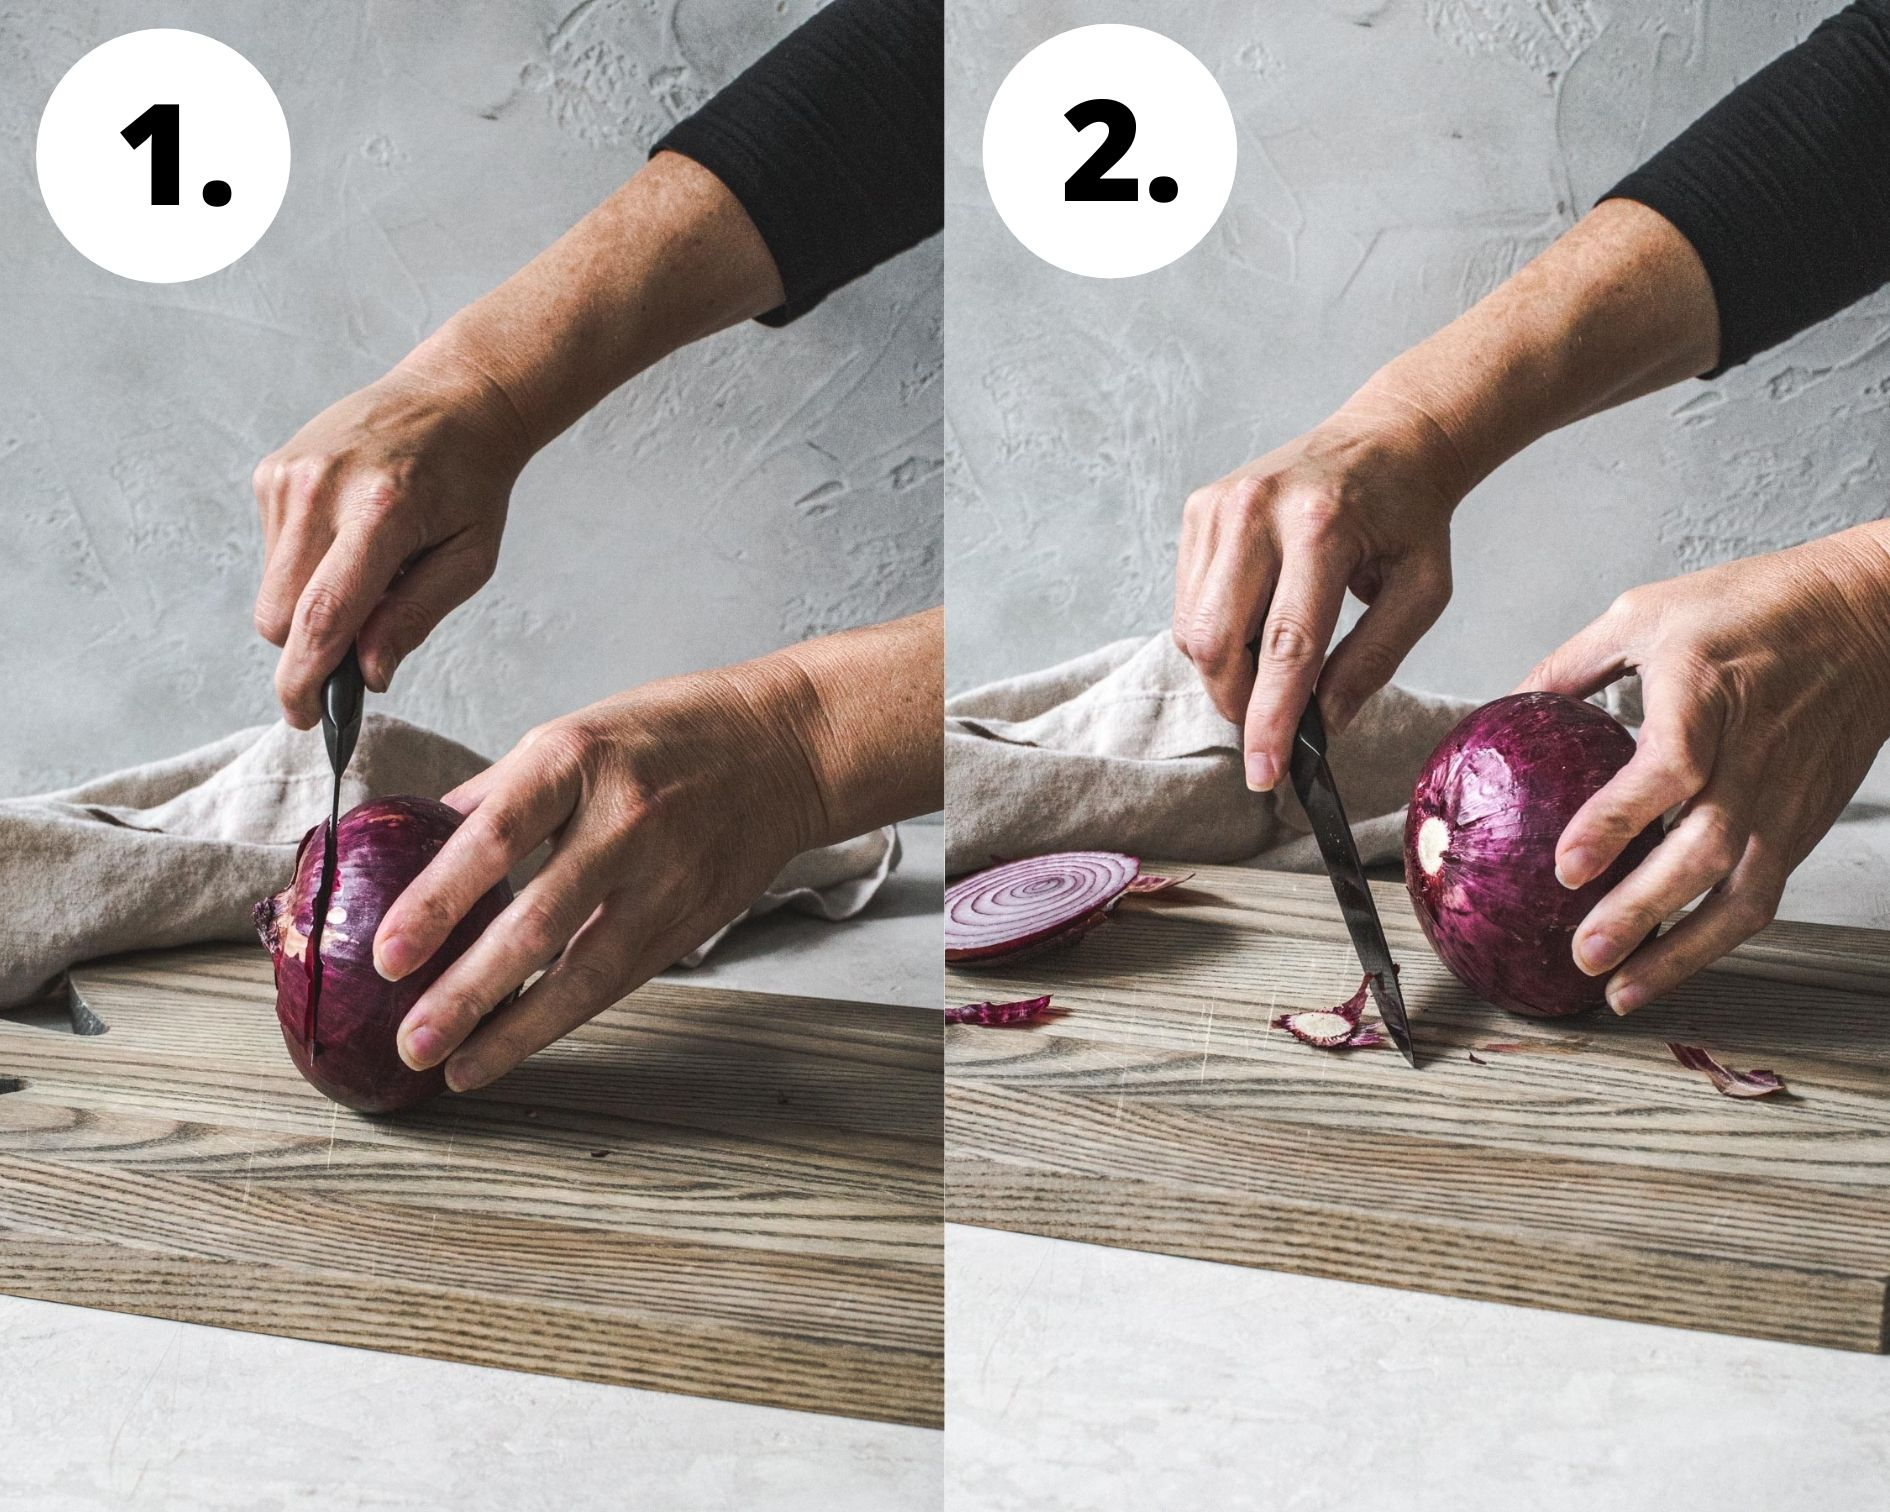 Process steps 1 and 2 for how to cut an onion.